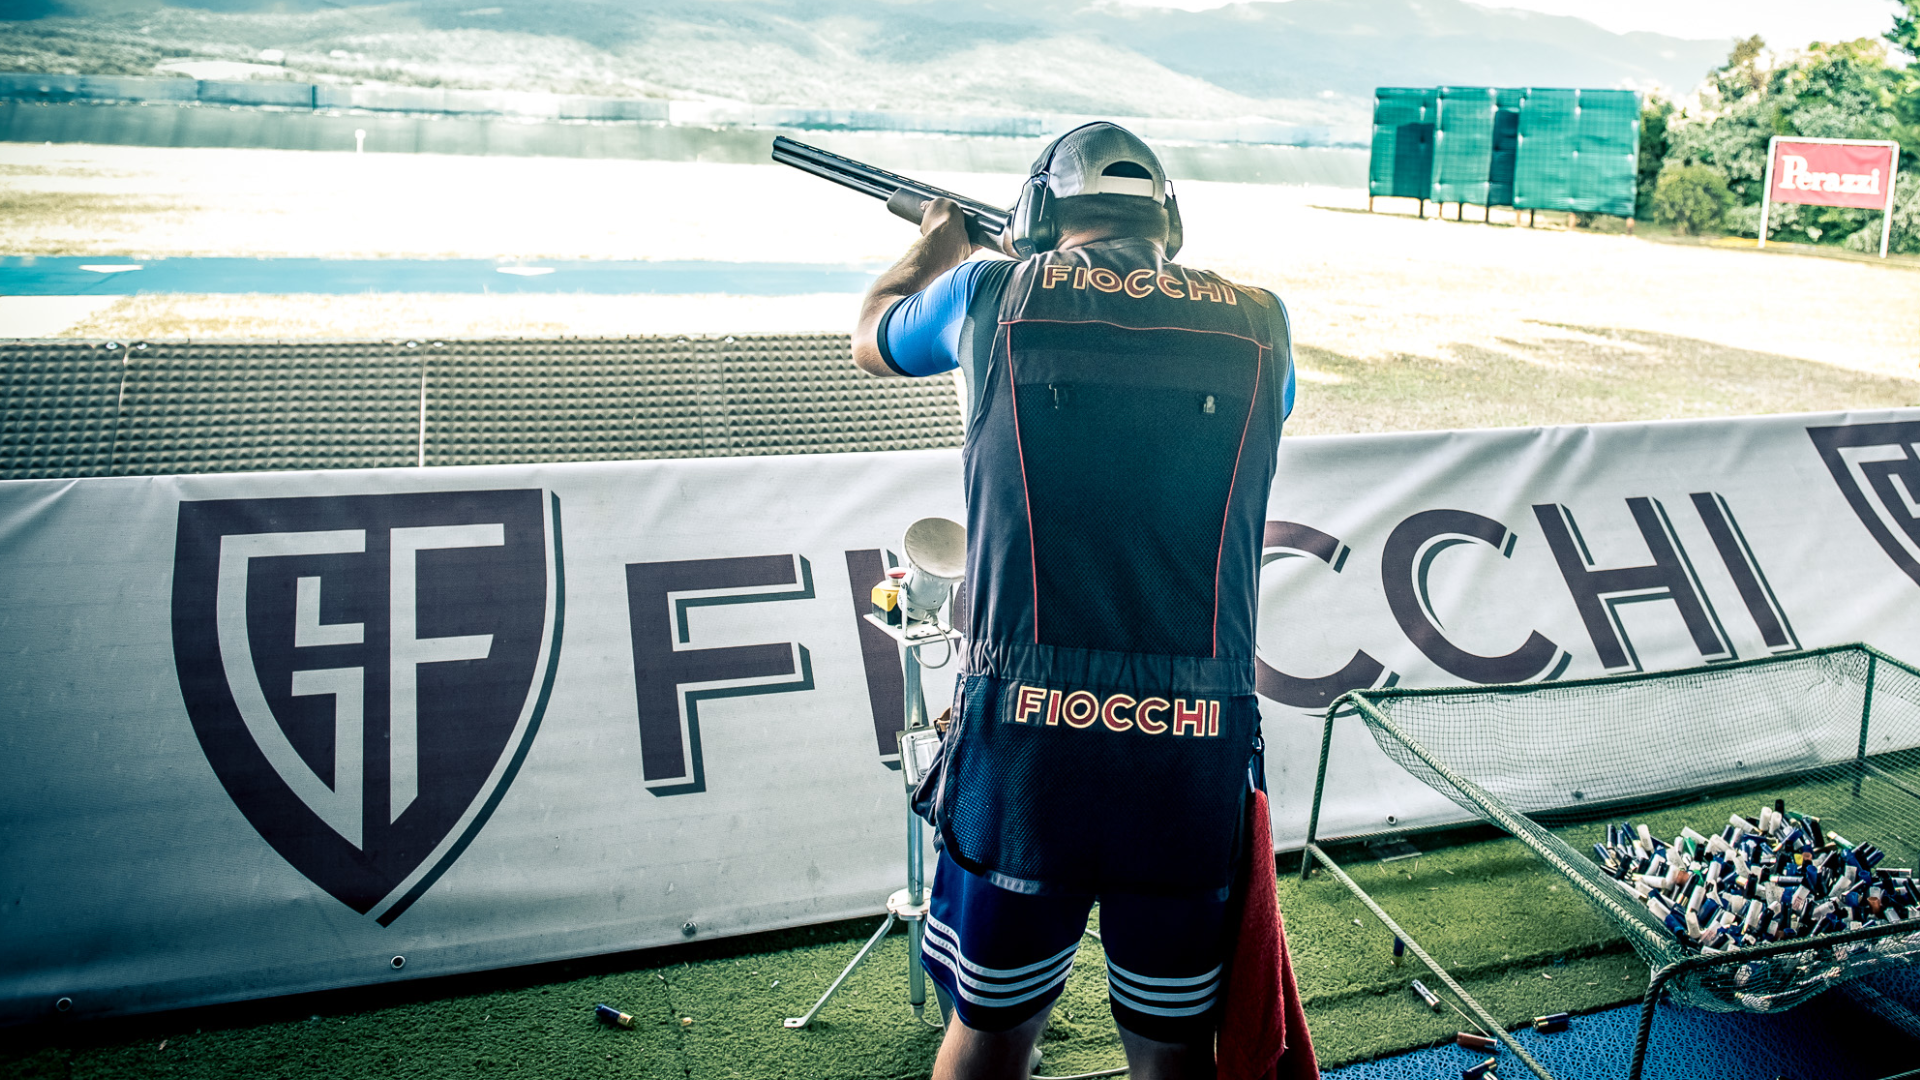 MASTER FIOCCHI 2019: THE TITLE WILL BE AT STAKE ON AUGUST 24TH AND 25TH